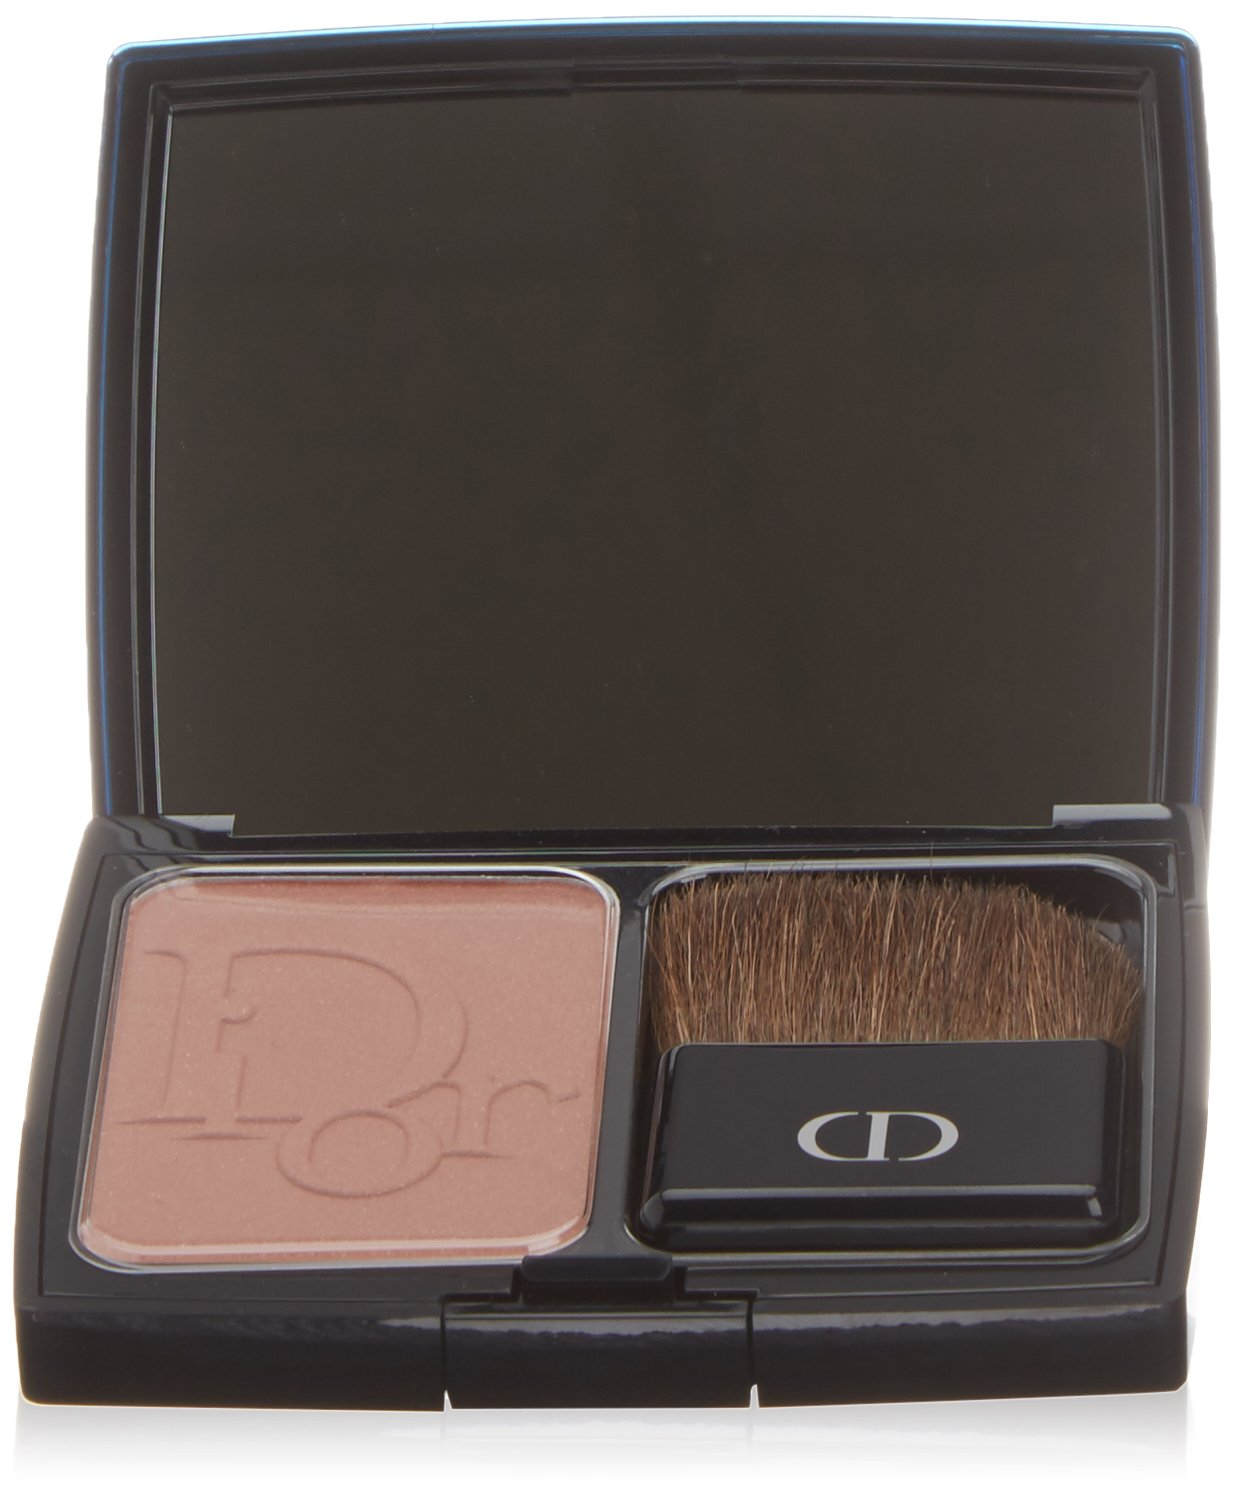 Christian Dior Blush Vibrant Color Powder Blush Mimi Bronze for Women, 0.2 Ounce